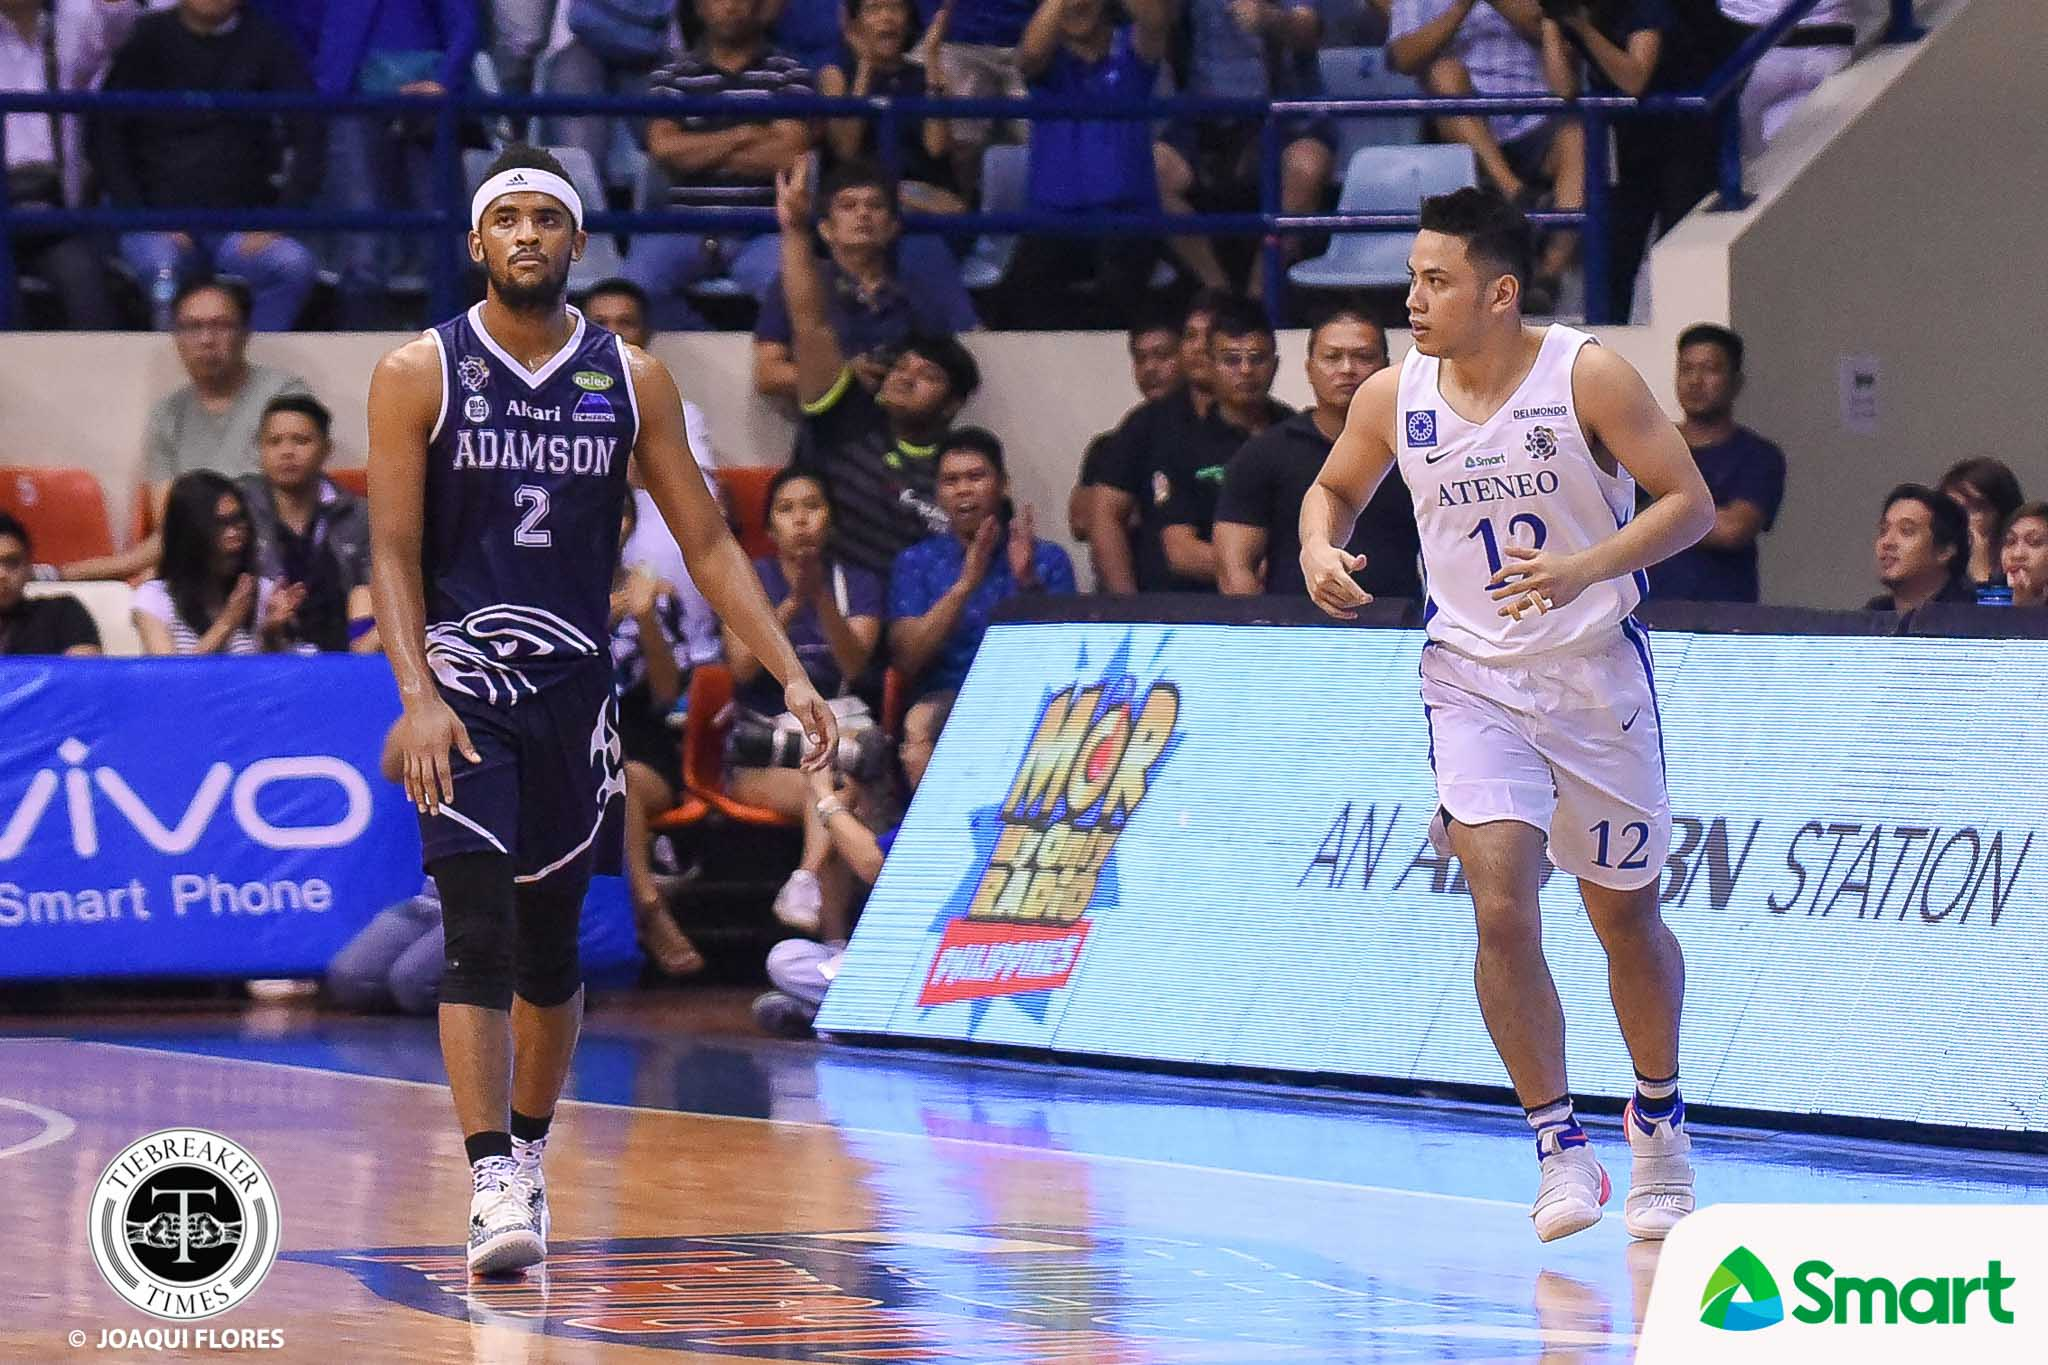 Tiebreaker Times In sickness and in recovery, Nieto Twins remain together ADMU Basketball News UAAP  UAAP Season 81 Men's Basketball UAAP Season 81 Mike Nieto Matt Nieto Ateneo Men's Basketball